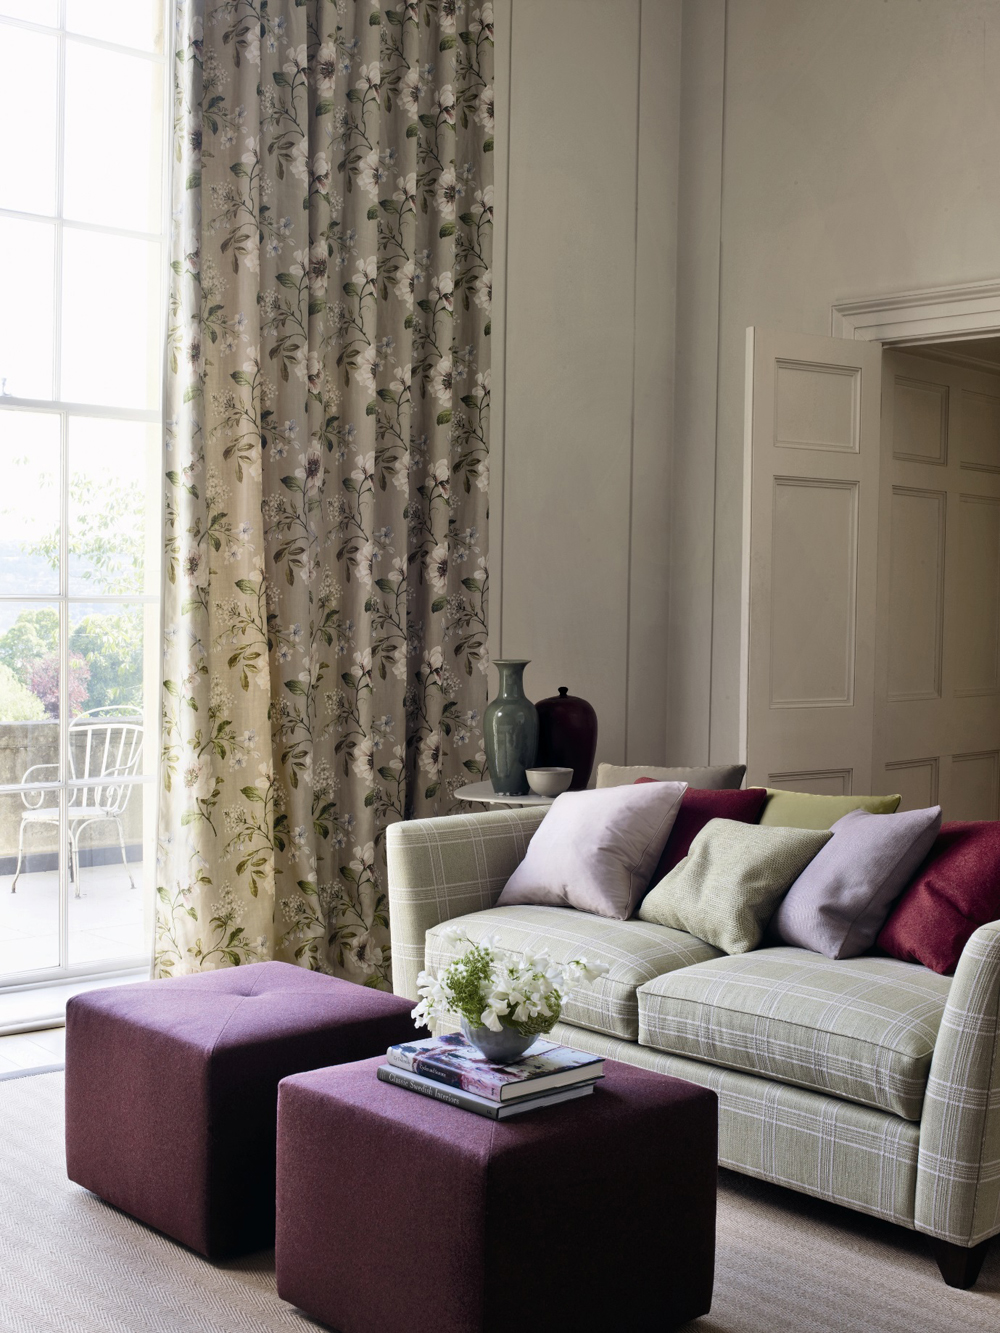 Jenny Blanc Blog - Colefax and Fowler Curtains